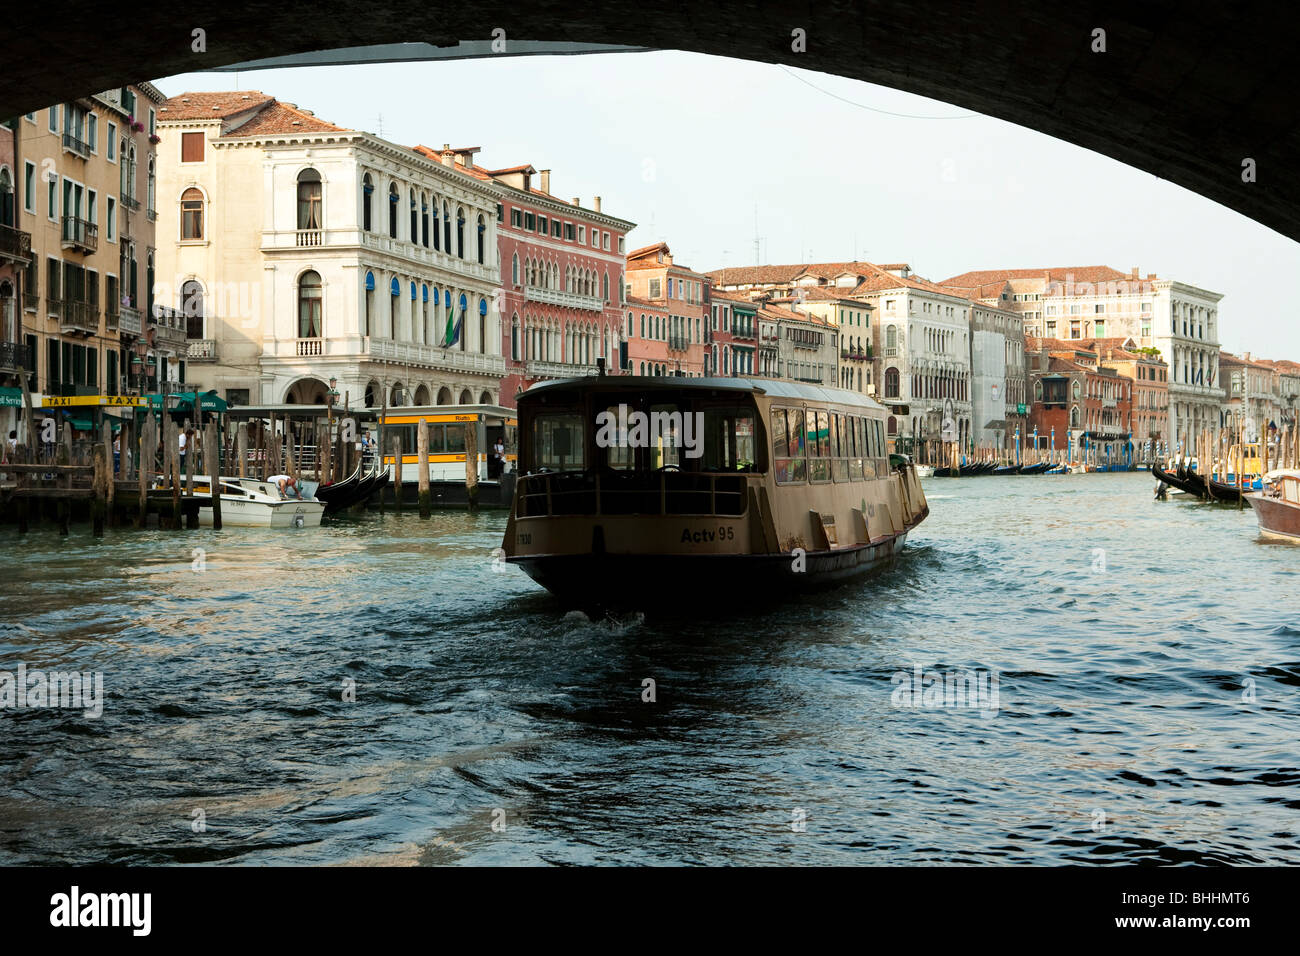 Venice, Italy. The Grand Canal, view beneath the Accademia Bridge - Stock Image